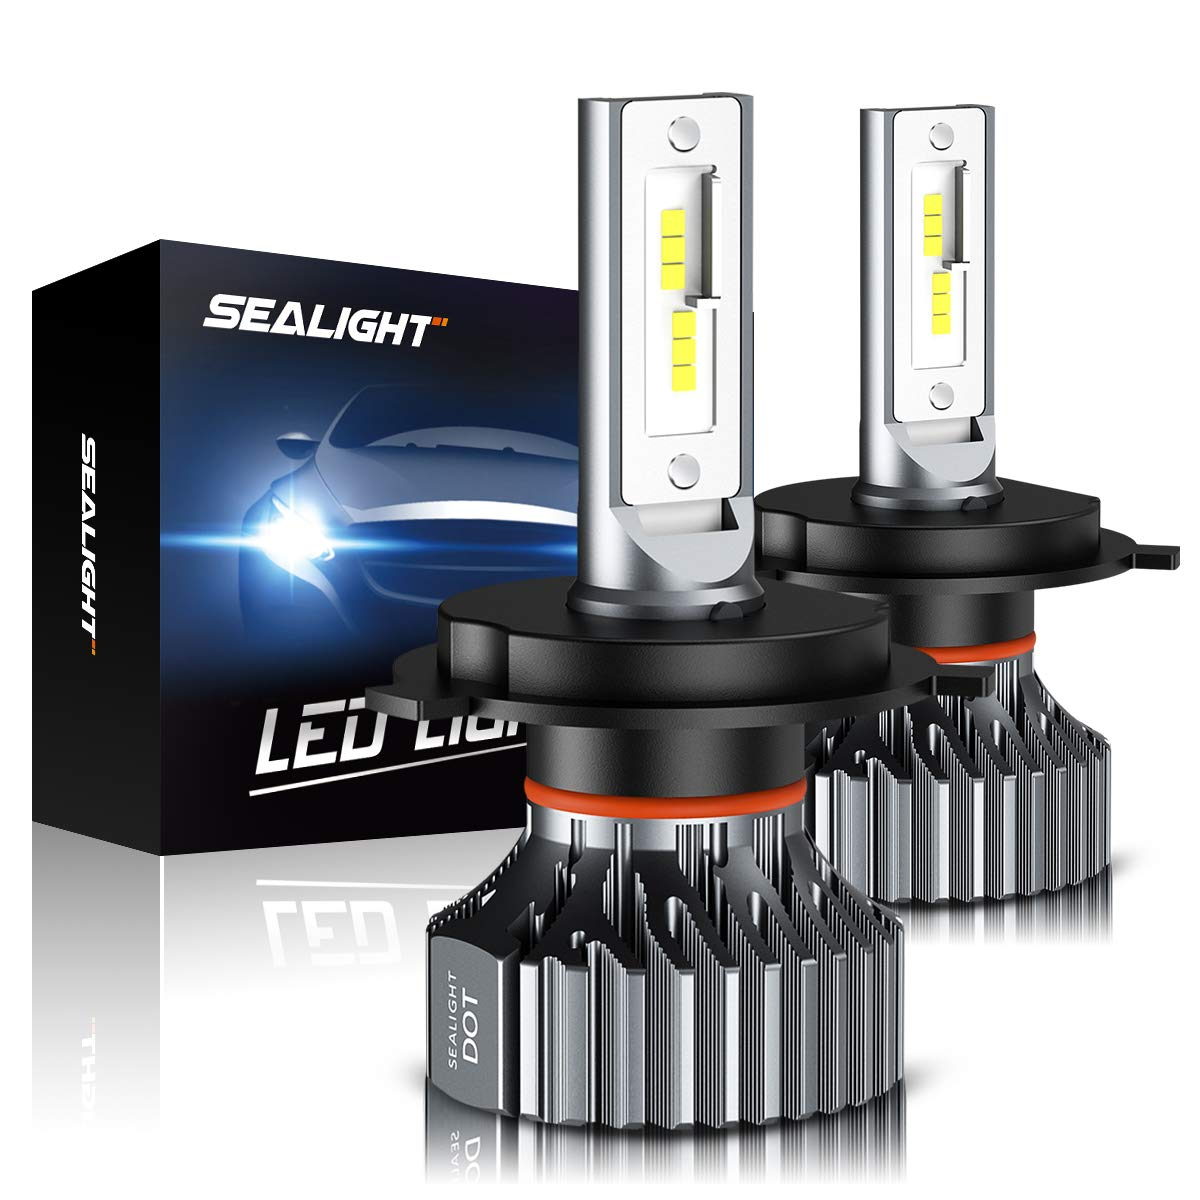 H4 9003 HB2 Led Headlight Bulbs, SEALIGHT Upgraded Super Bright 24x CSP Led Chips Headlight Kit -Hi/Lo Beam 6500LM 6000K White